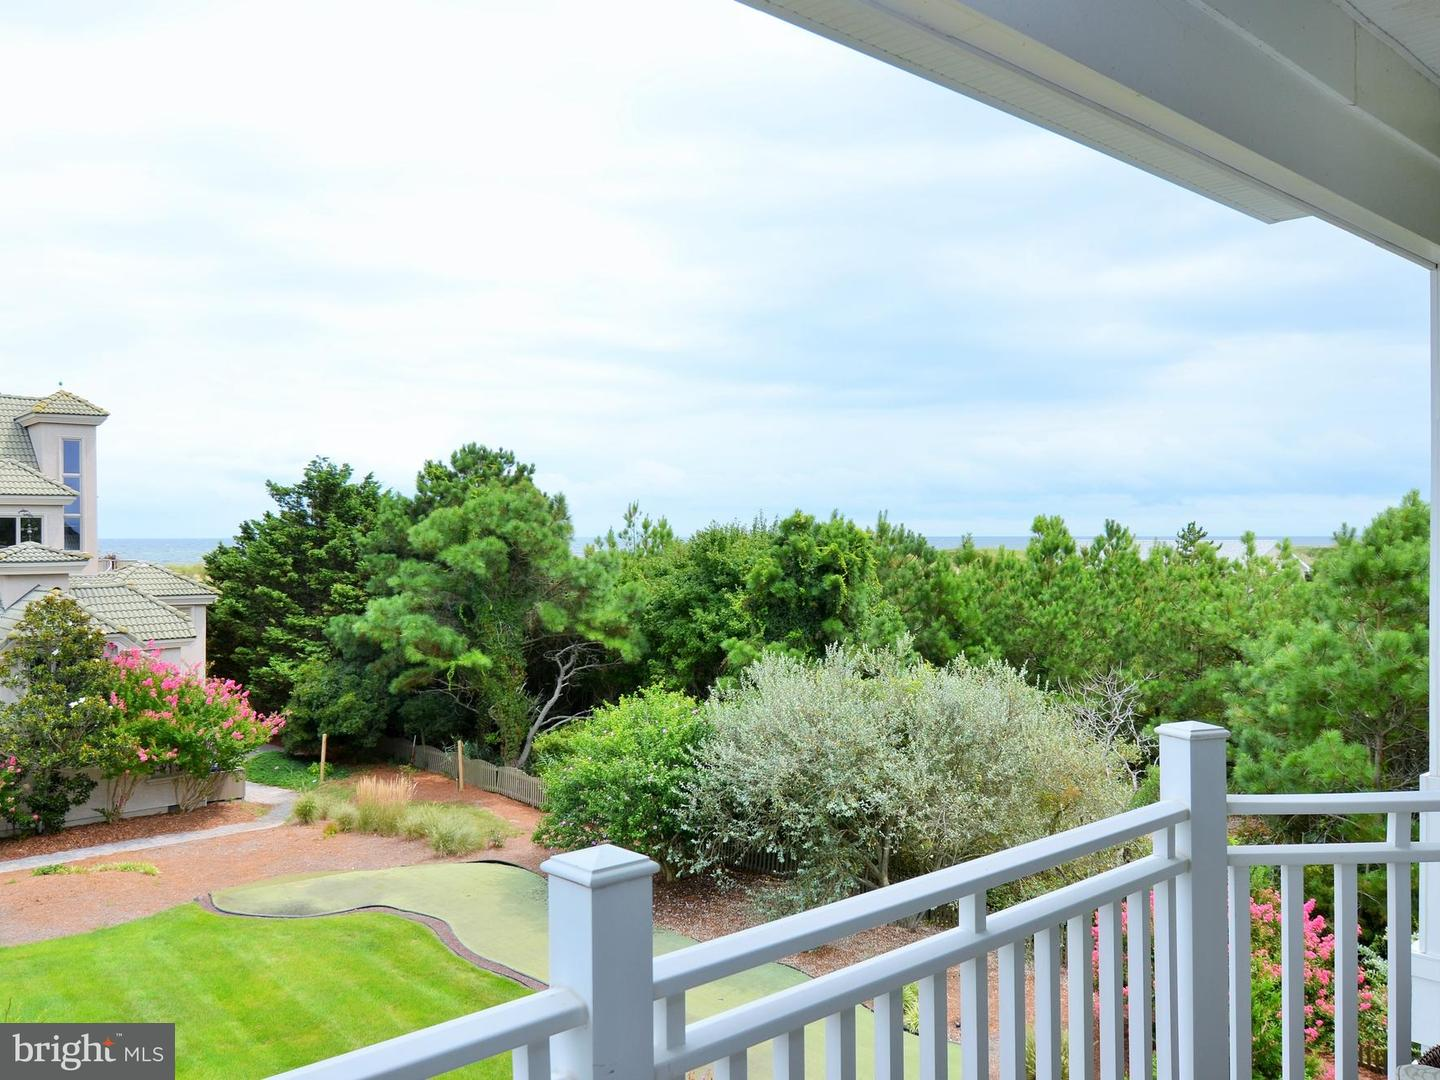 1002293530-300500811662-2018-09-25-15-08-25 31 Hall Ave | Rehoboth Beach, De Real Estate For Sale | MLS# 1002293530  - Suzanne Macnab